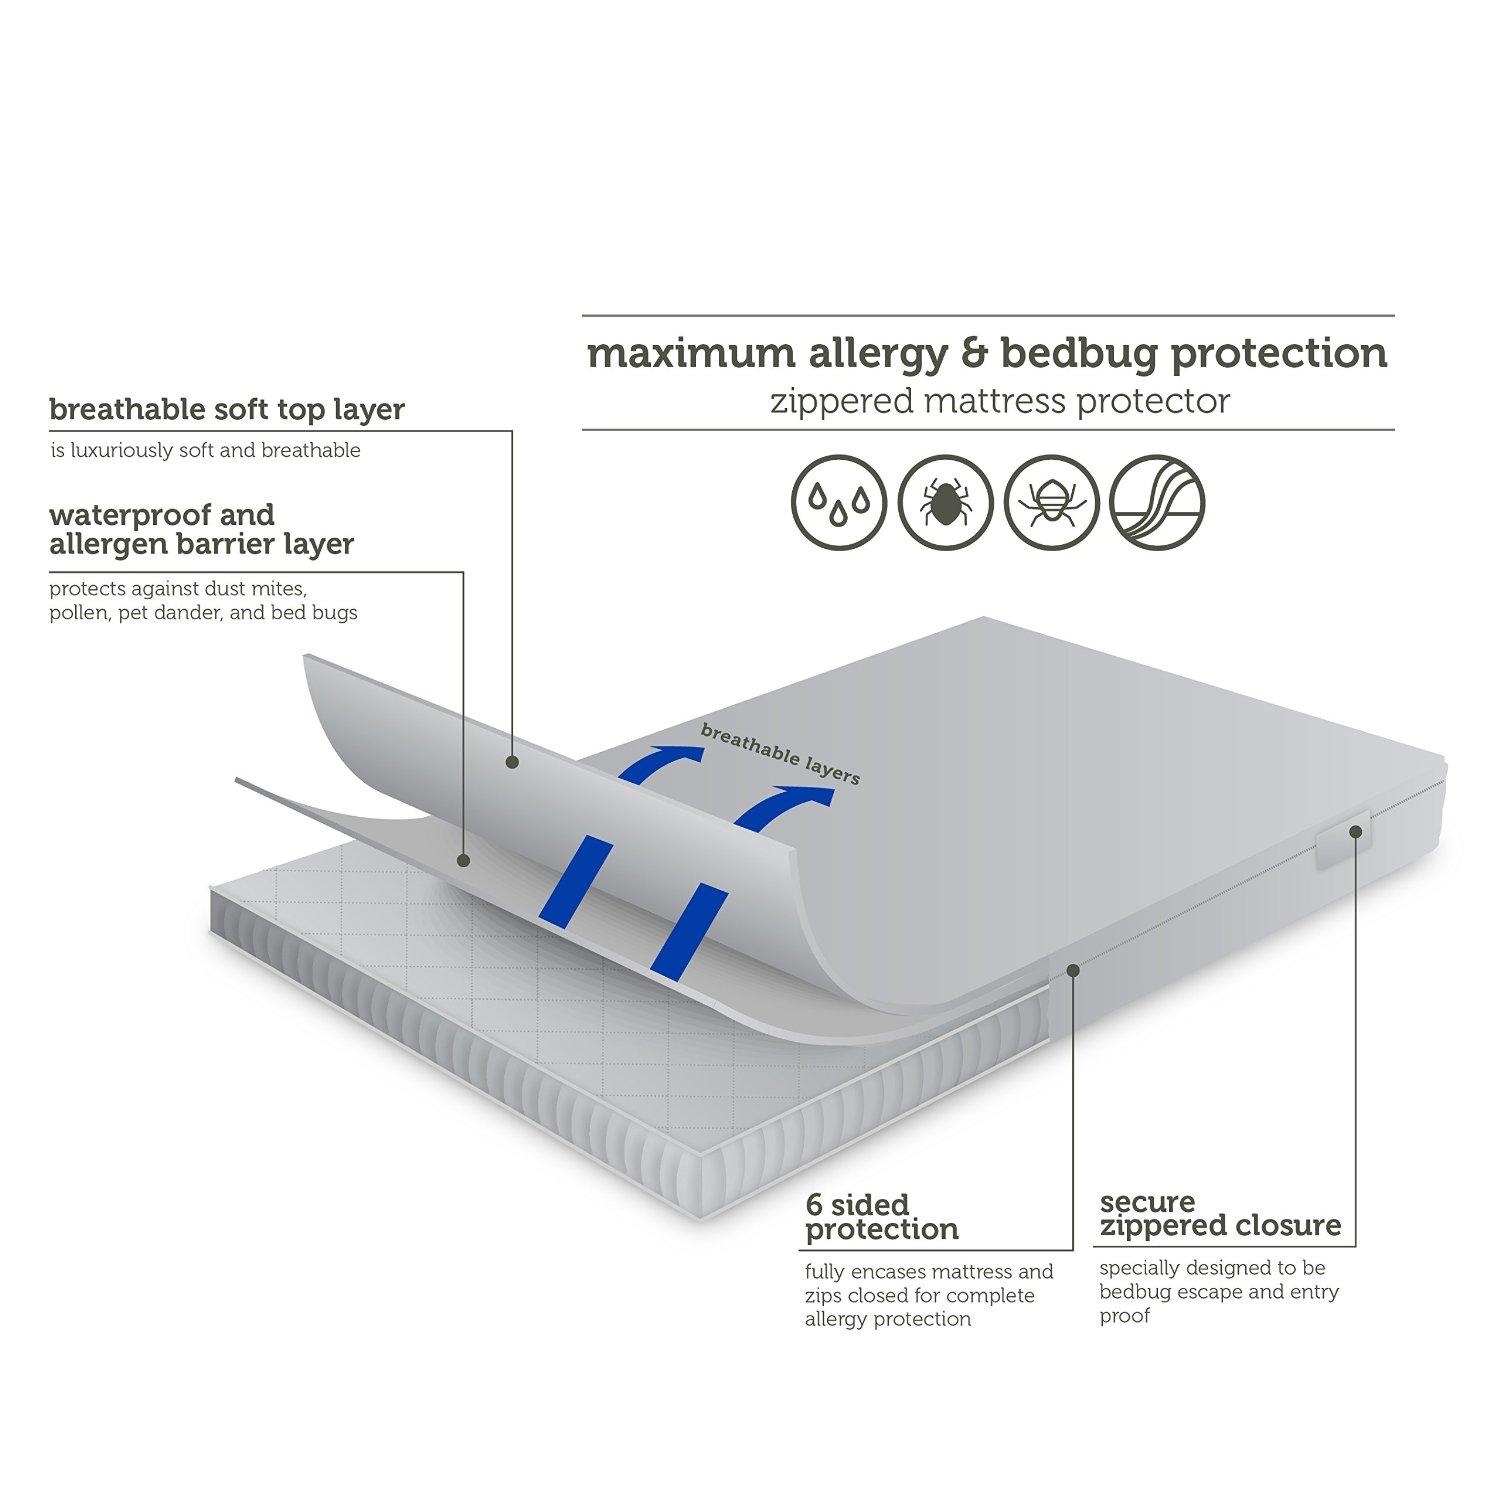 AllerEase Maximum Allergy Bed Bug Protection Zippered Mattress Protector